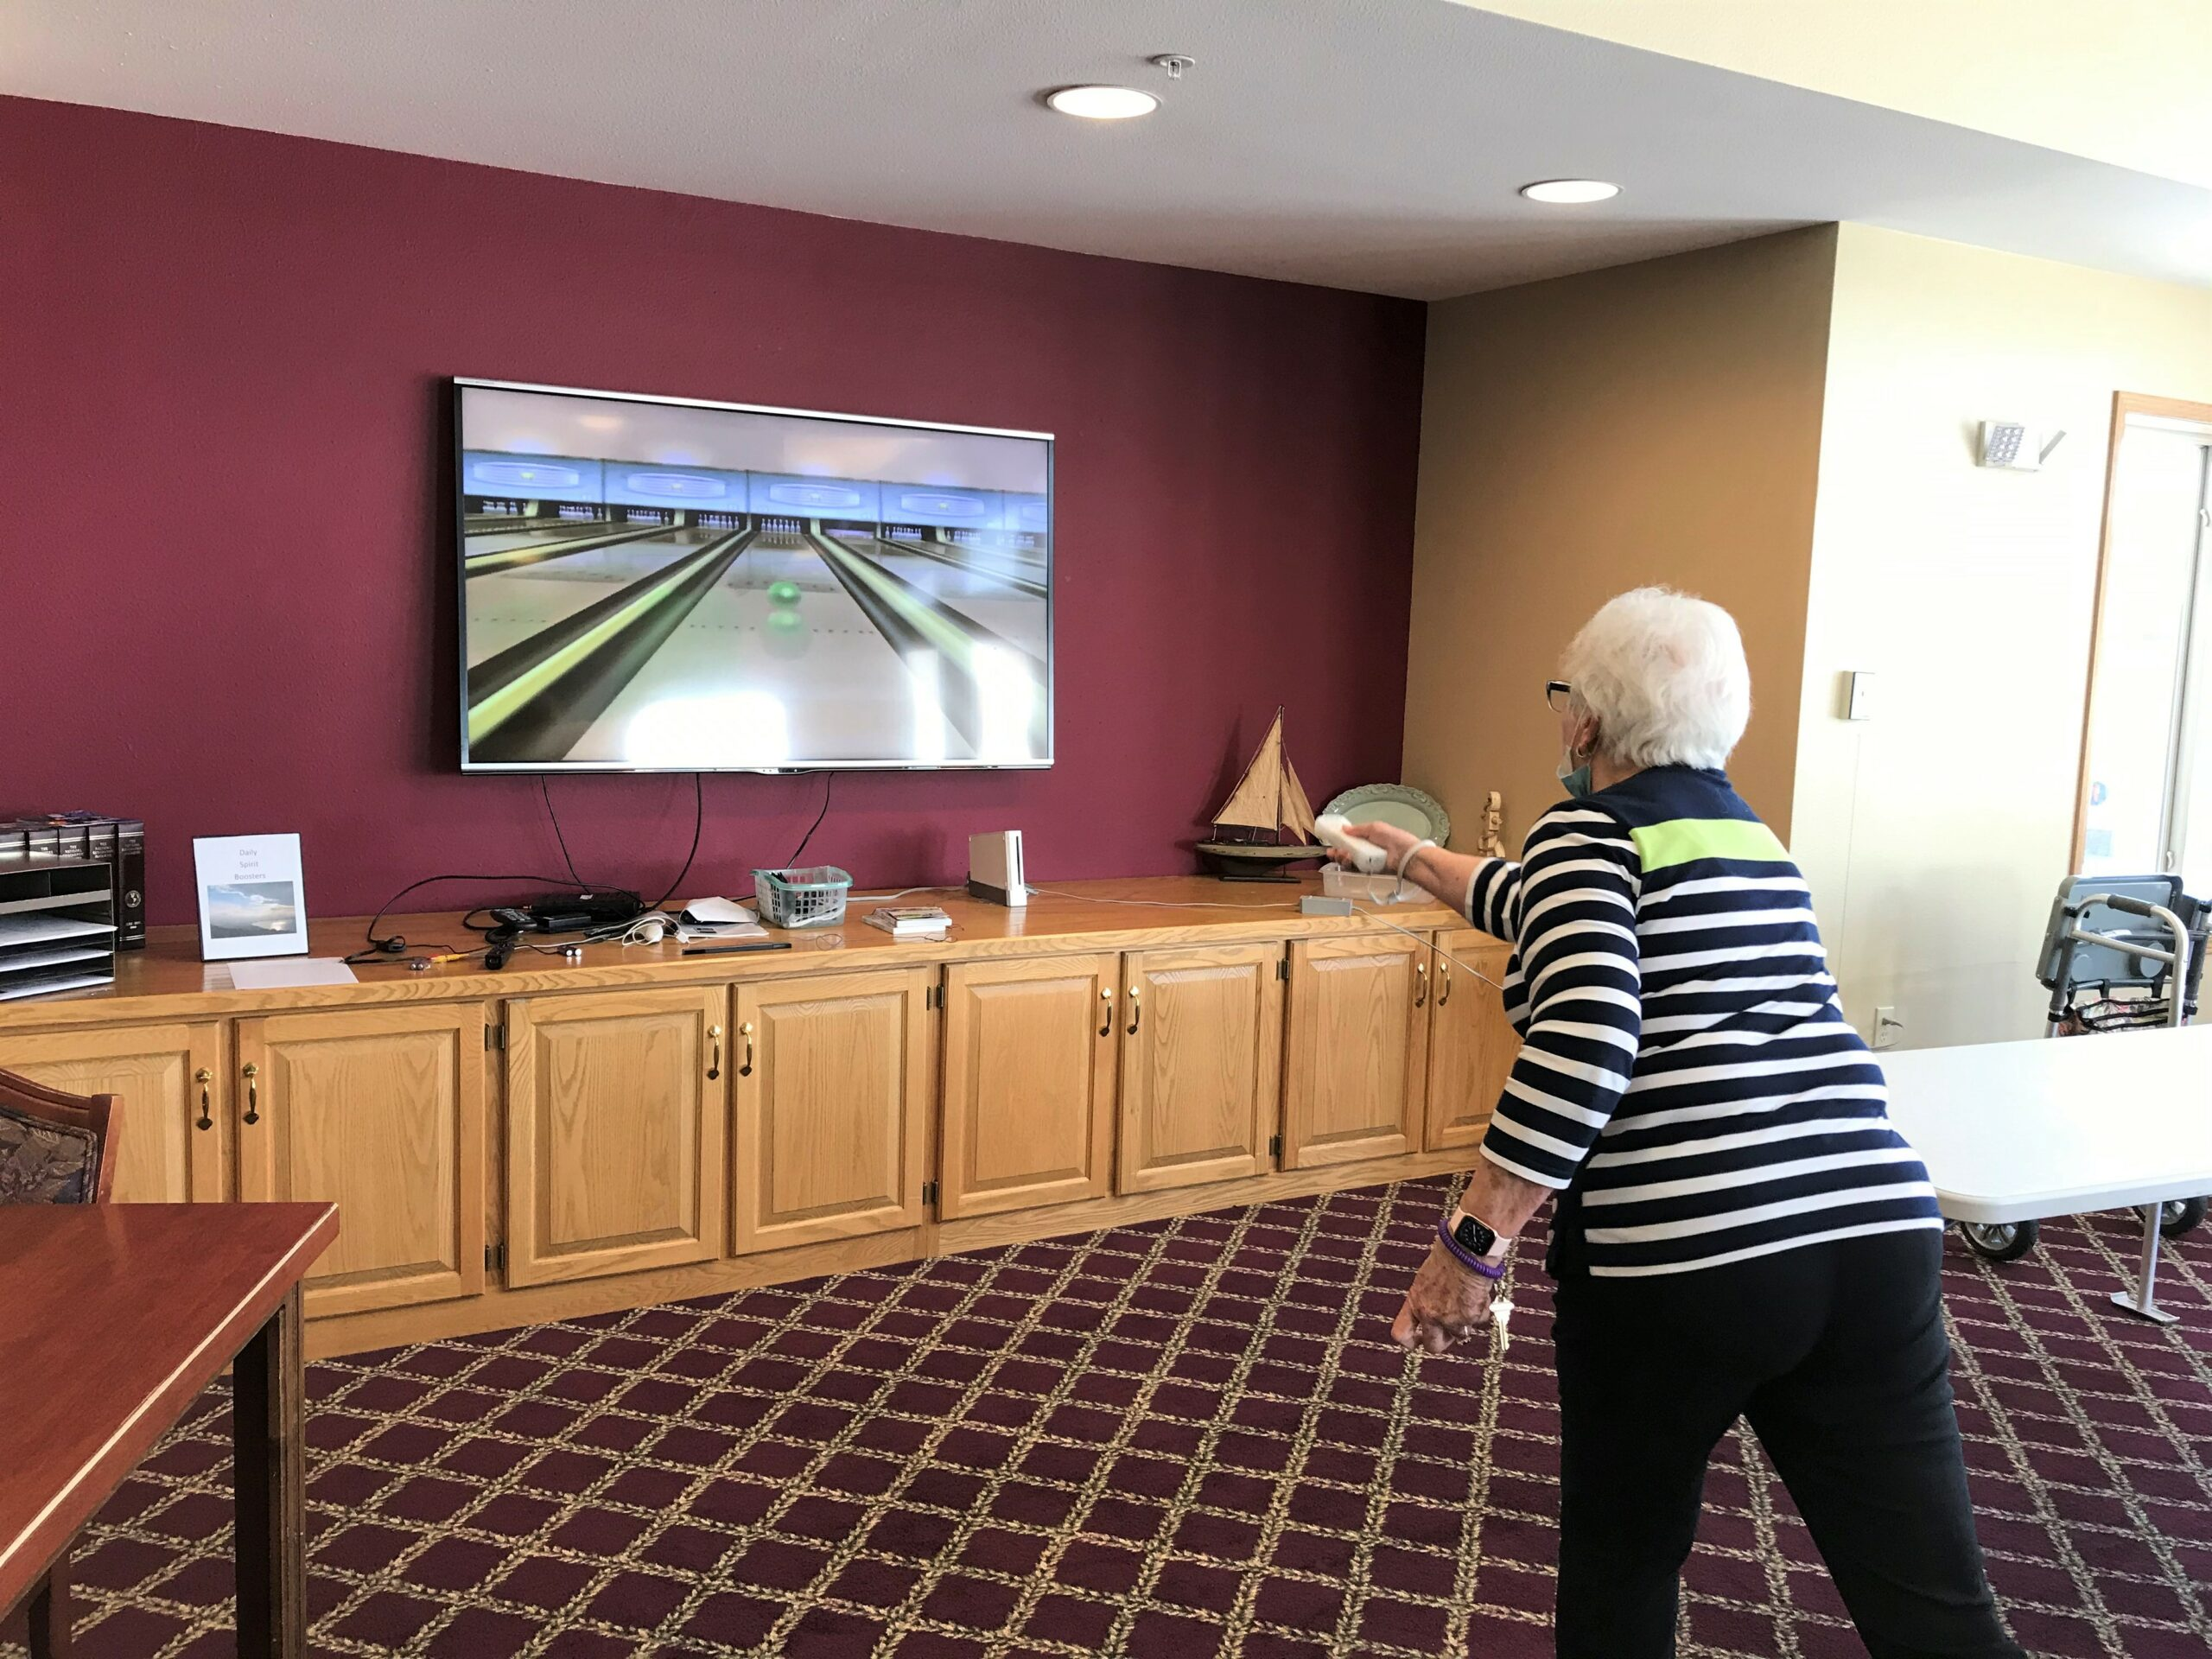 Playing a game of Wii Bowling